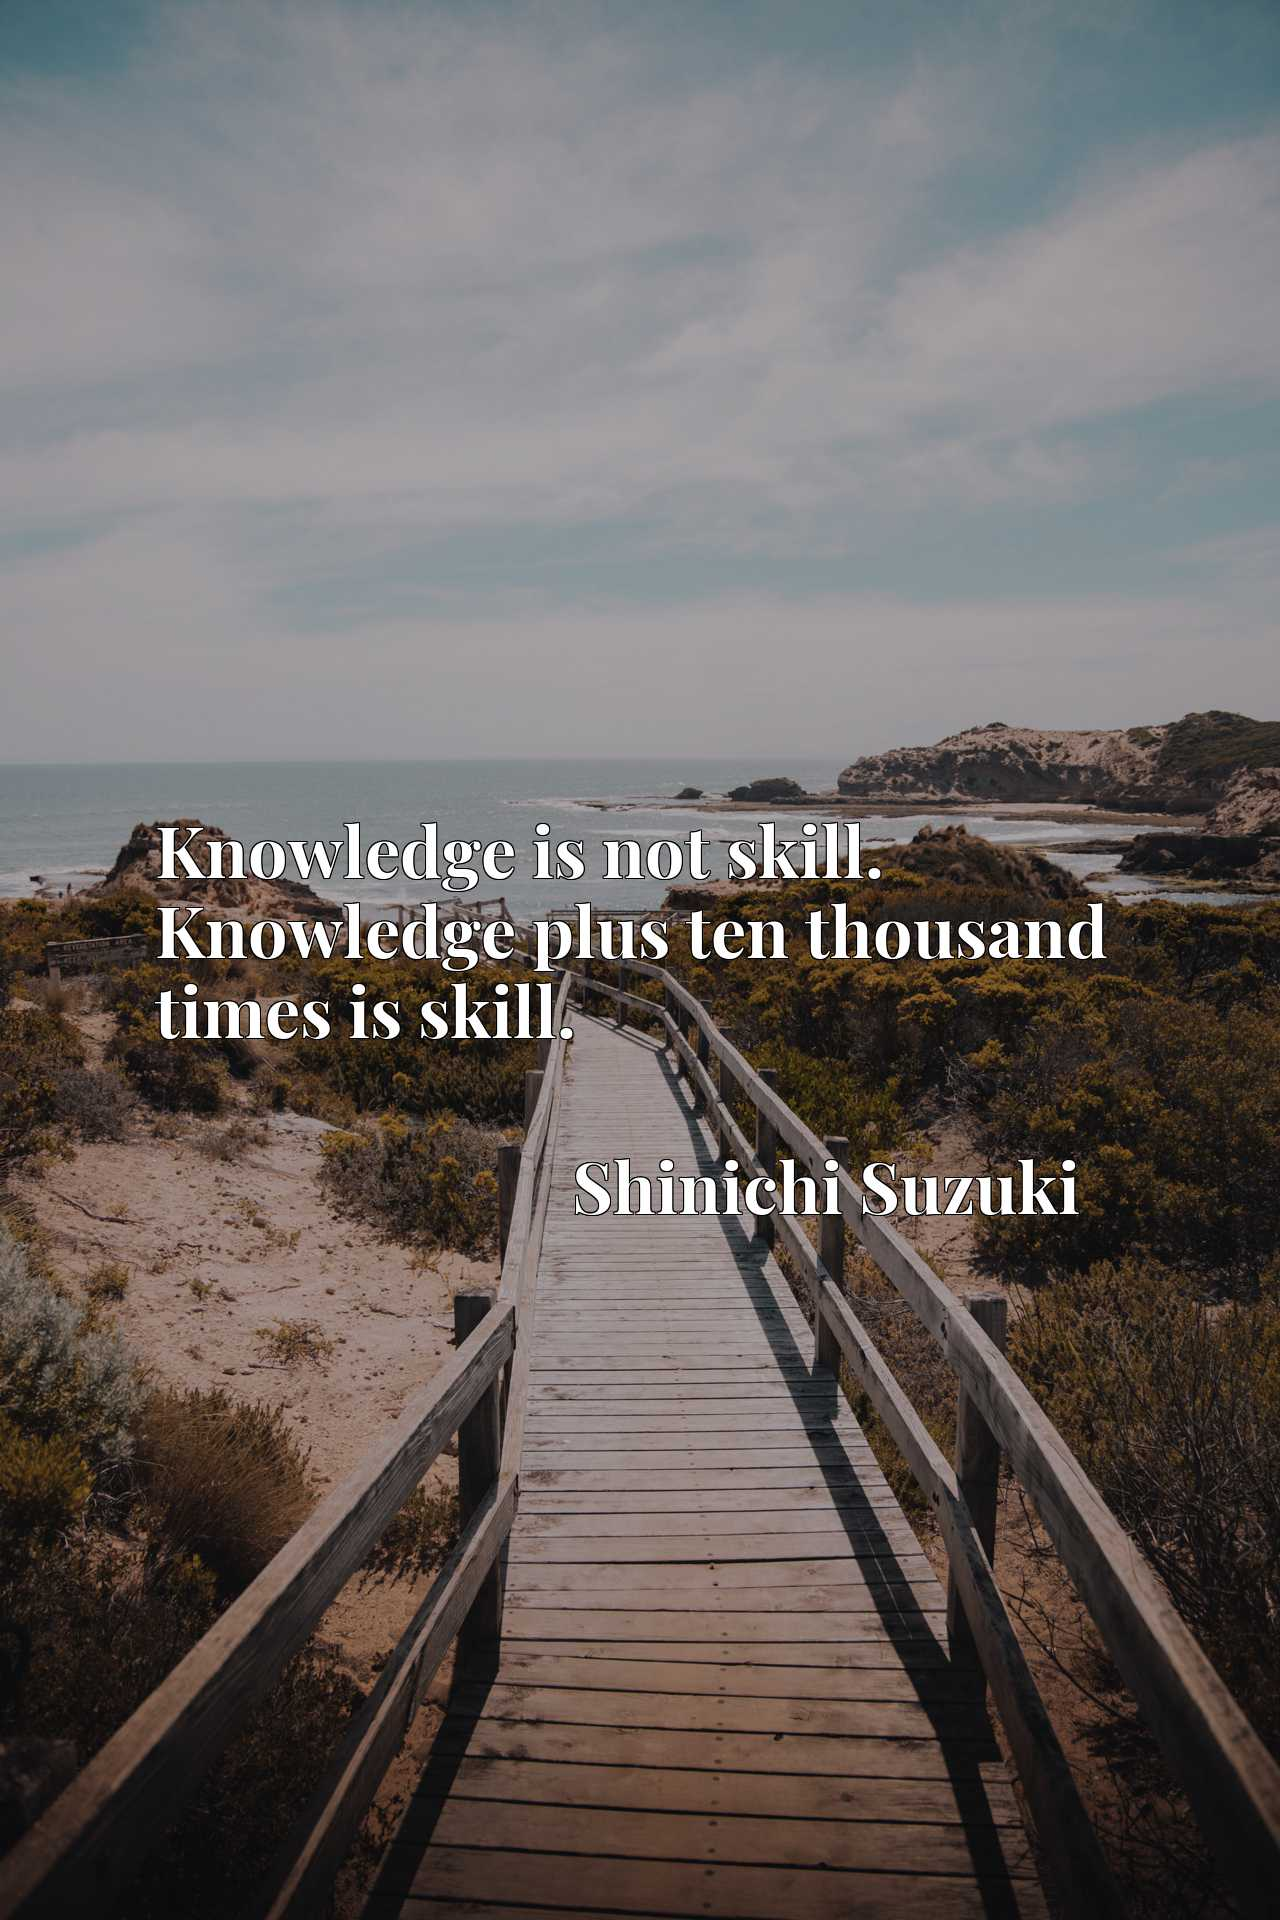 Knowledge is not skill. Knowledge plus ten thousand times is skill.